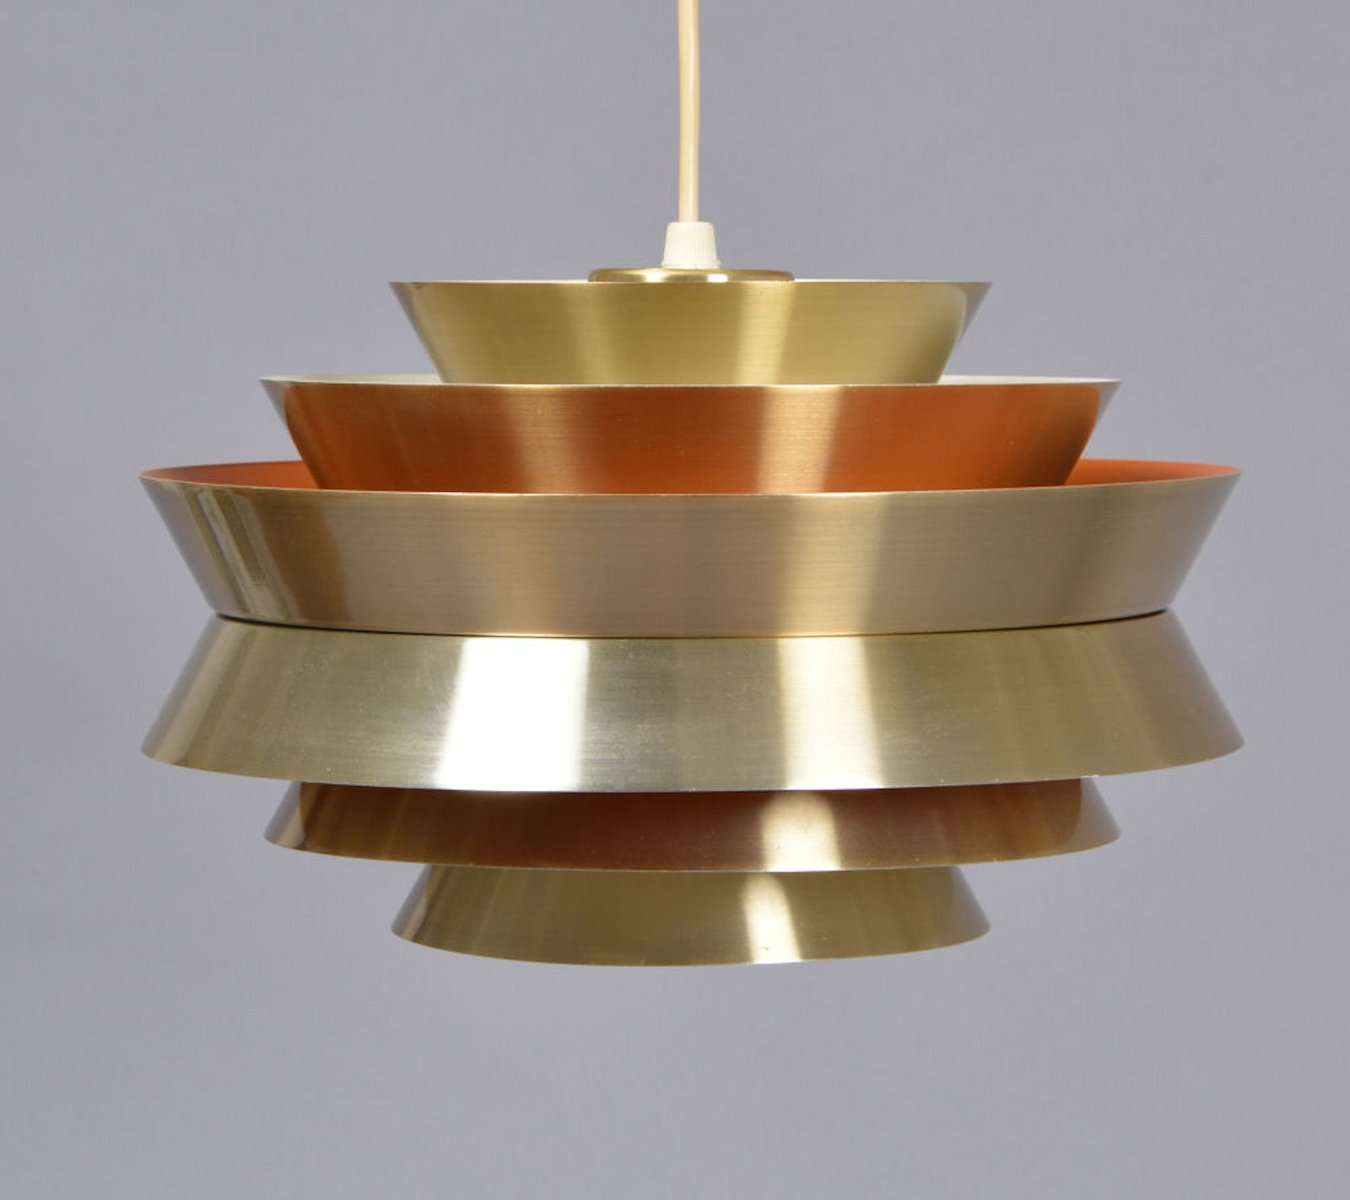 Mid Century Modern Split Level 1956 Edition Better Homes: Danish Mid-Century Pendant Lamp By Carl Thore For Granhaga